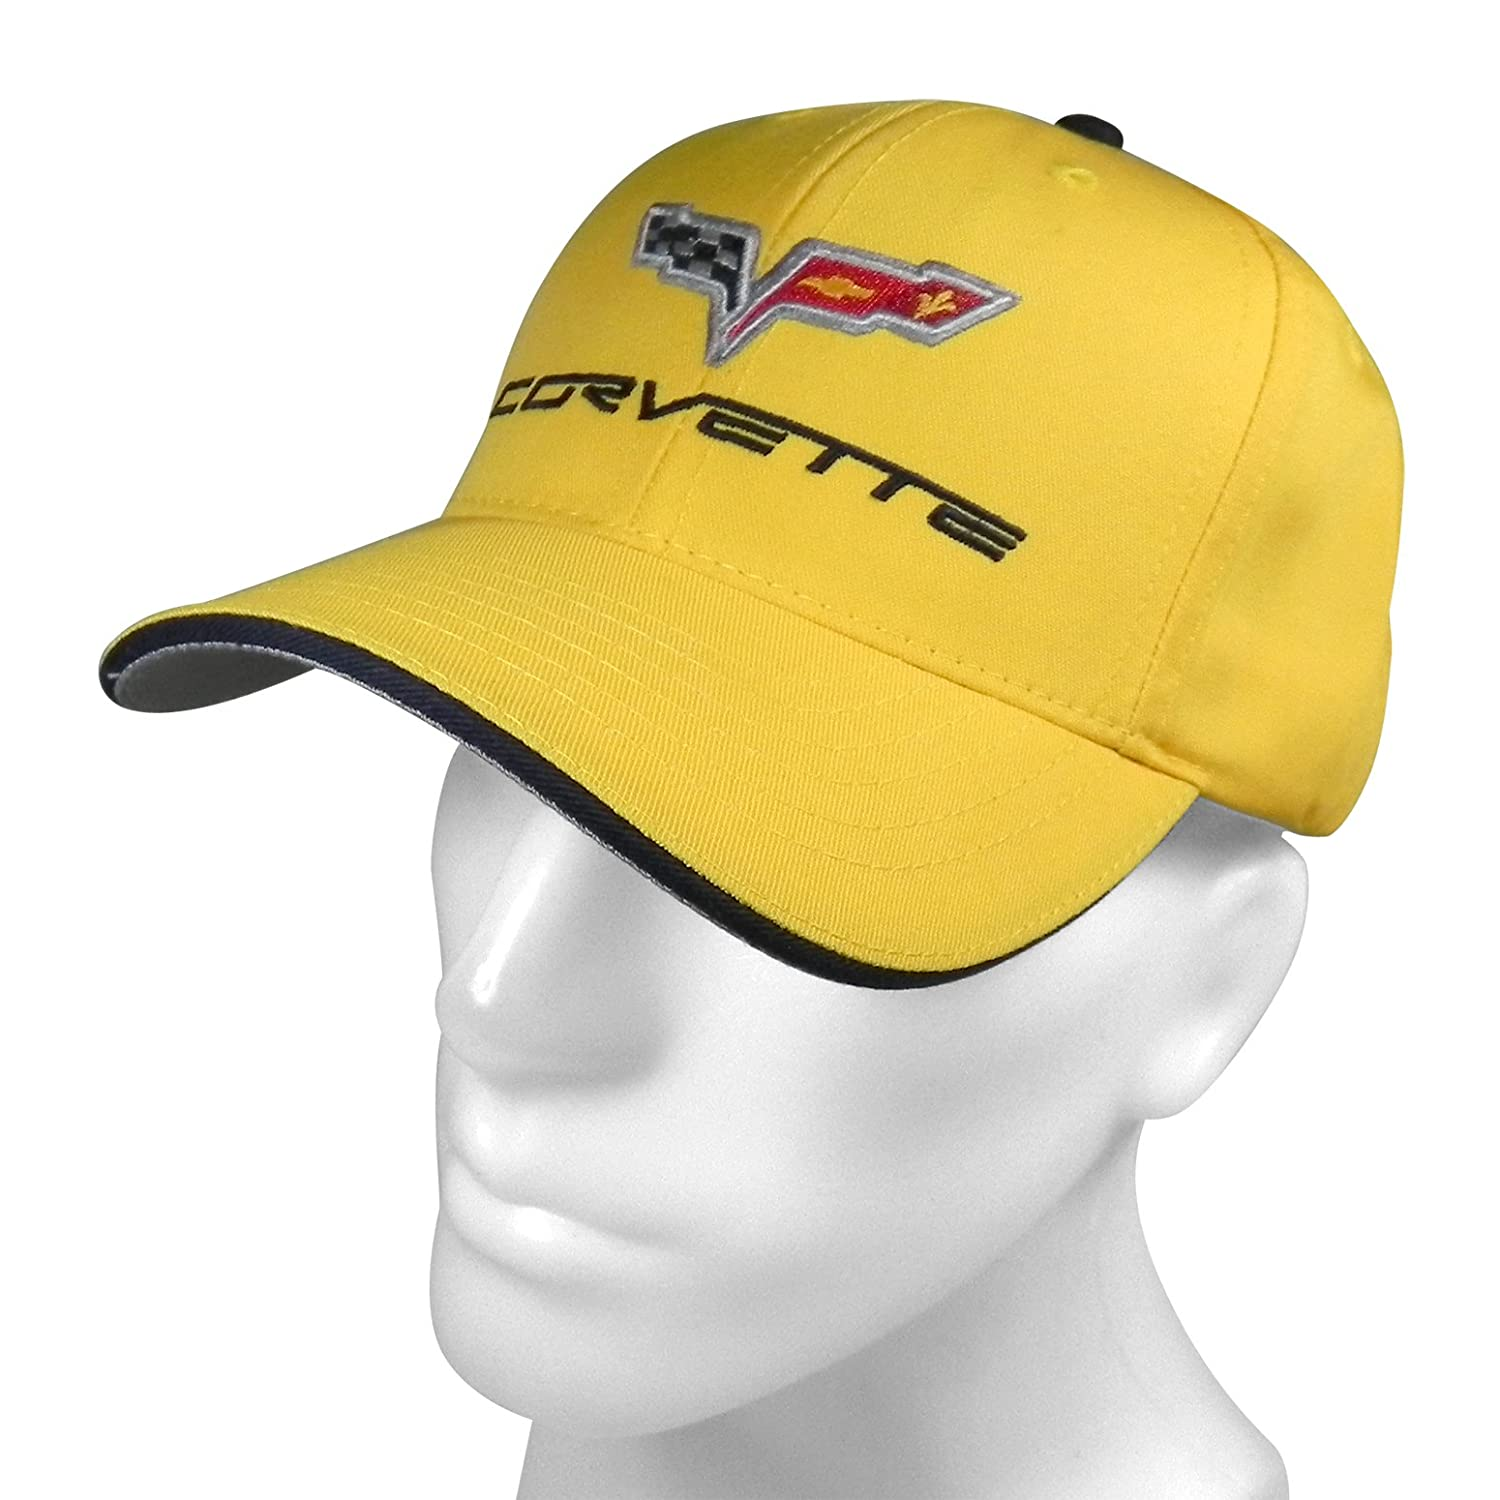 Official RW Chevrolet Corvette C6 Logo Yellow Baseball Cap